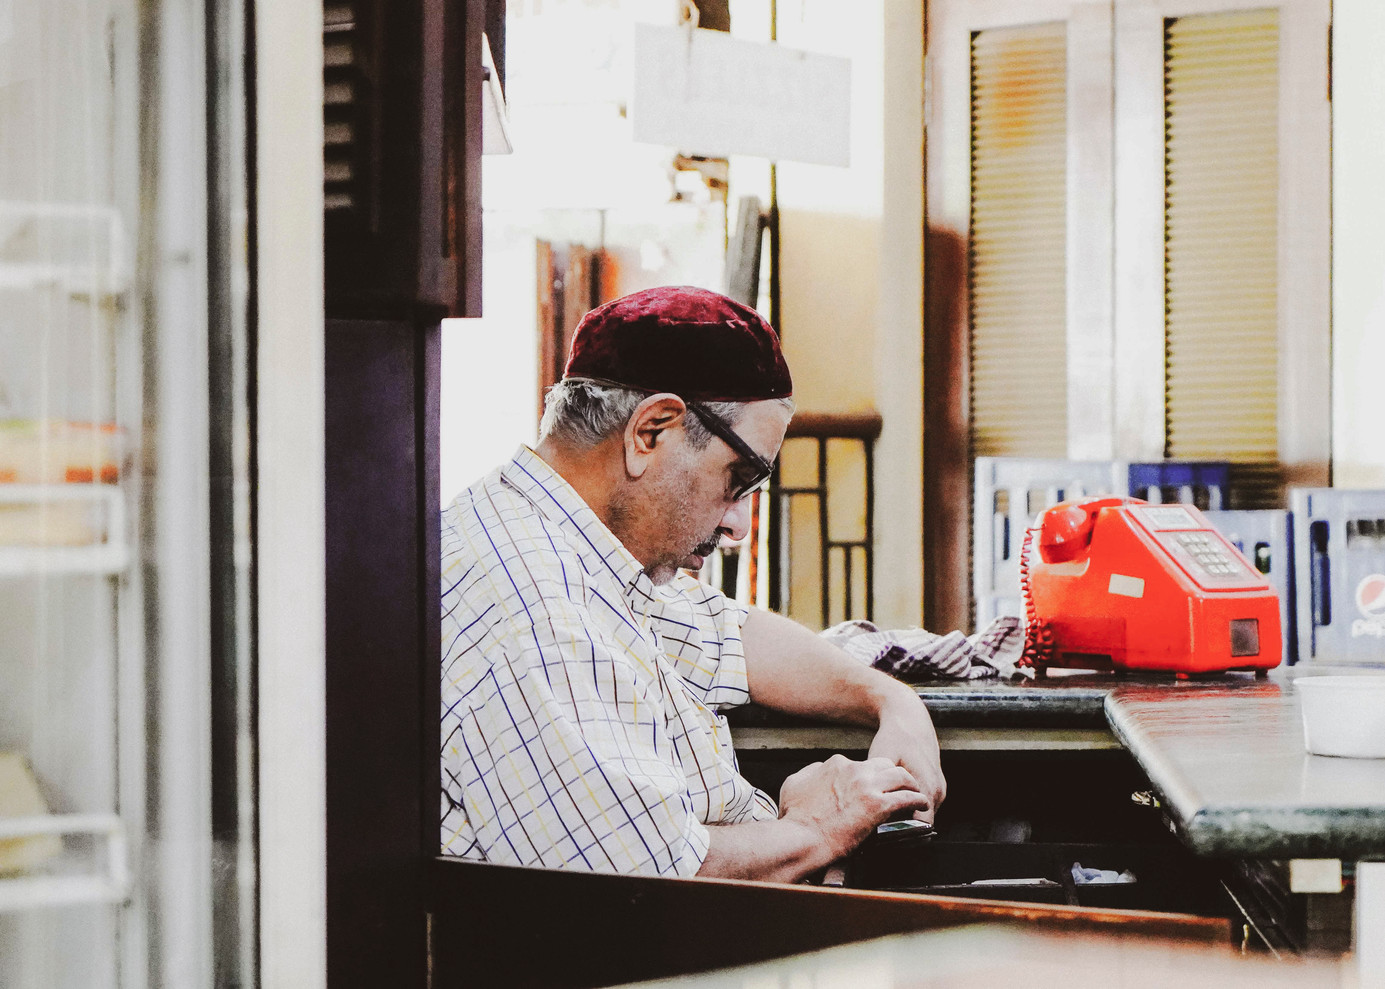 Merwan Kola, one half of the duo that runs Sassanian Boulangerie. After more than a century, the Irani cafe still stands strong at Dhobi Talao, courtesy Kola and Adi Yazdabadi. It was Adi Yazdabadi's grandfather, Rustam K. Yazdabadi, who set up the bakery in 1913. The cafe is named after the Sassanian Empire which ruled pre-Islamic Persia, from 224 to 651 AD, before the Arab invasion in the seventh century.